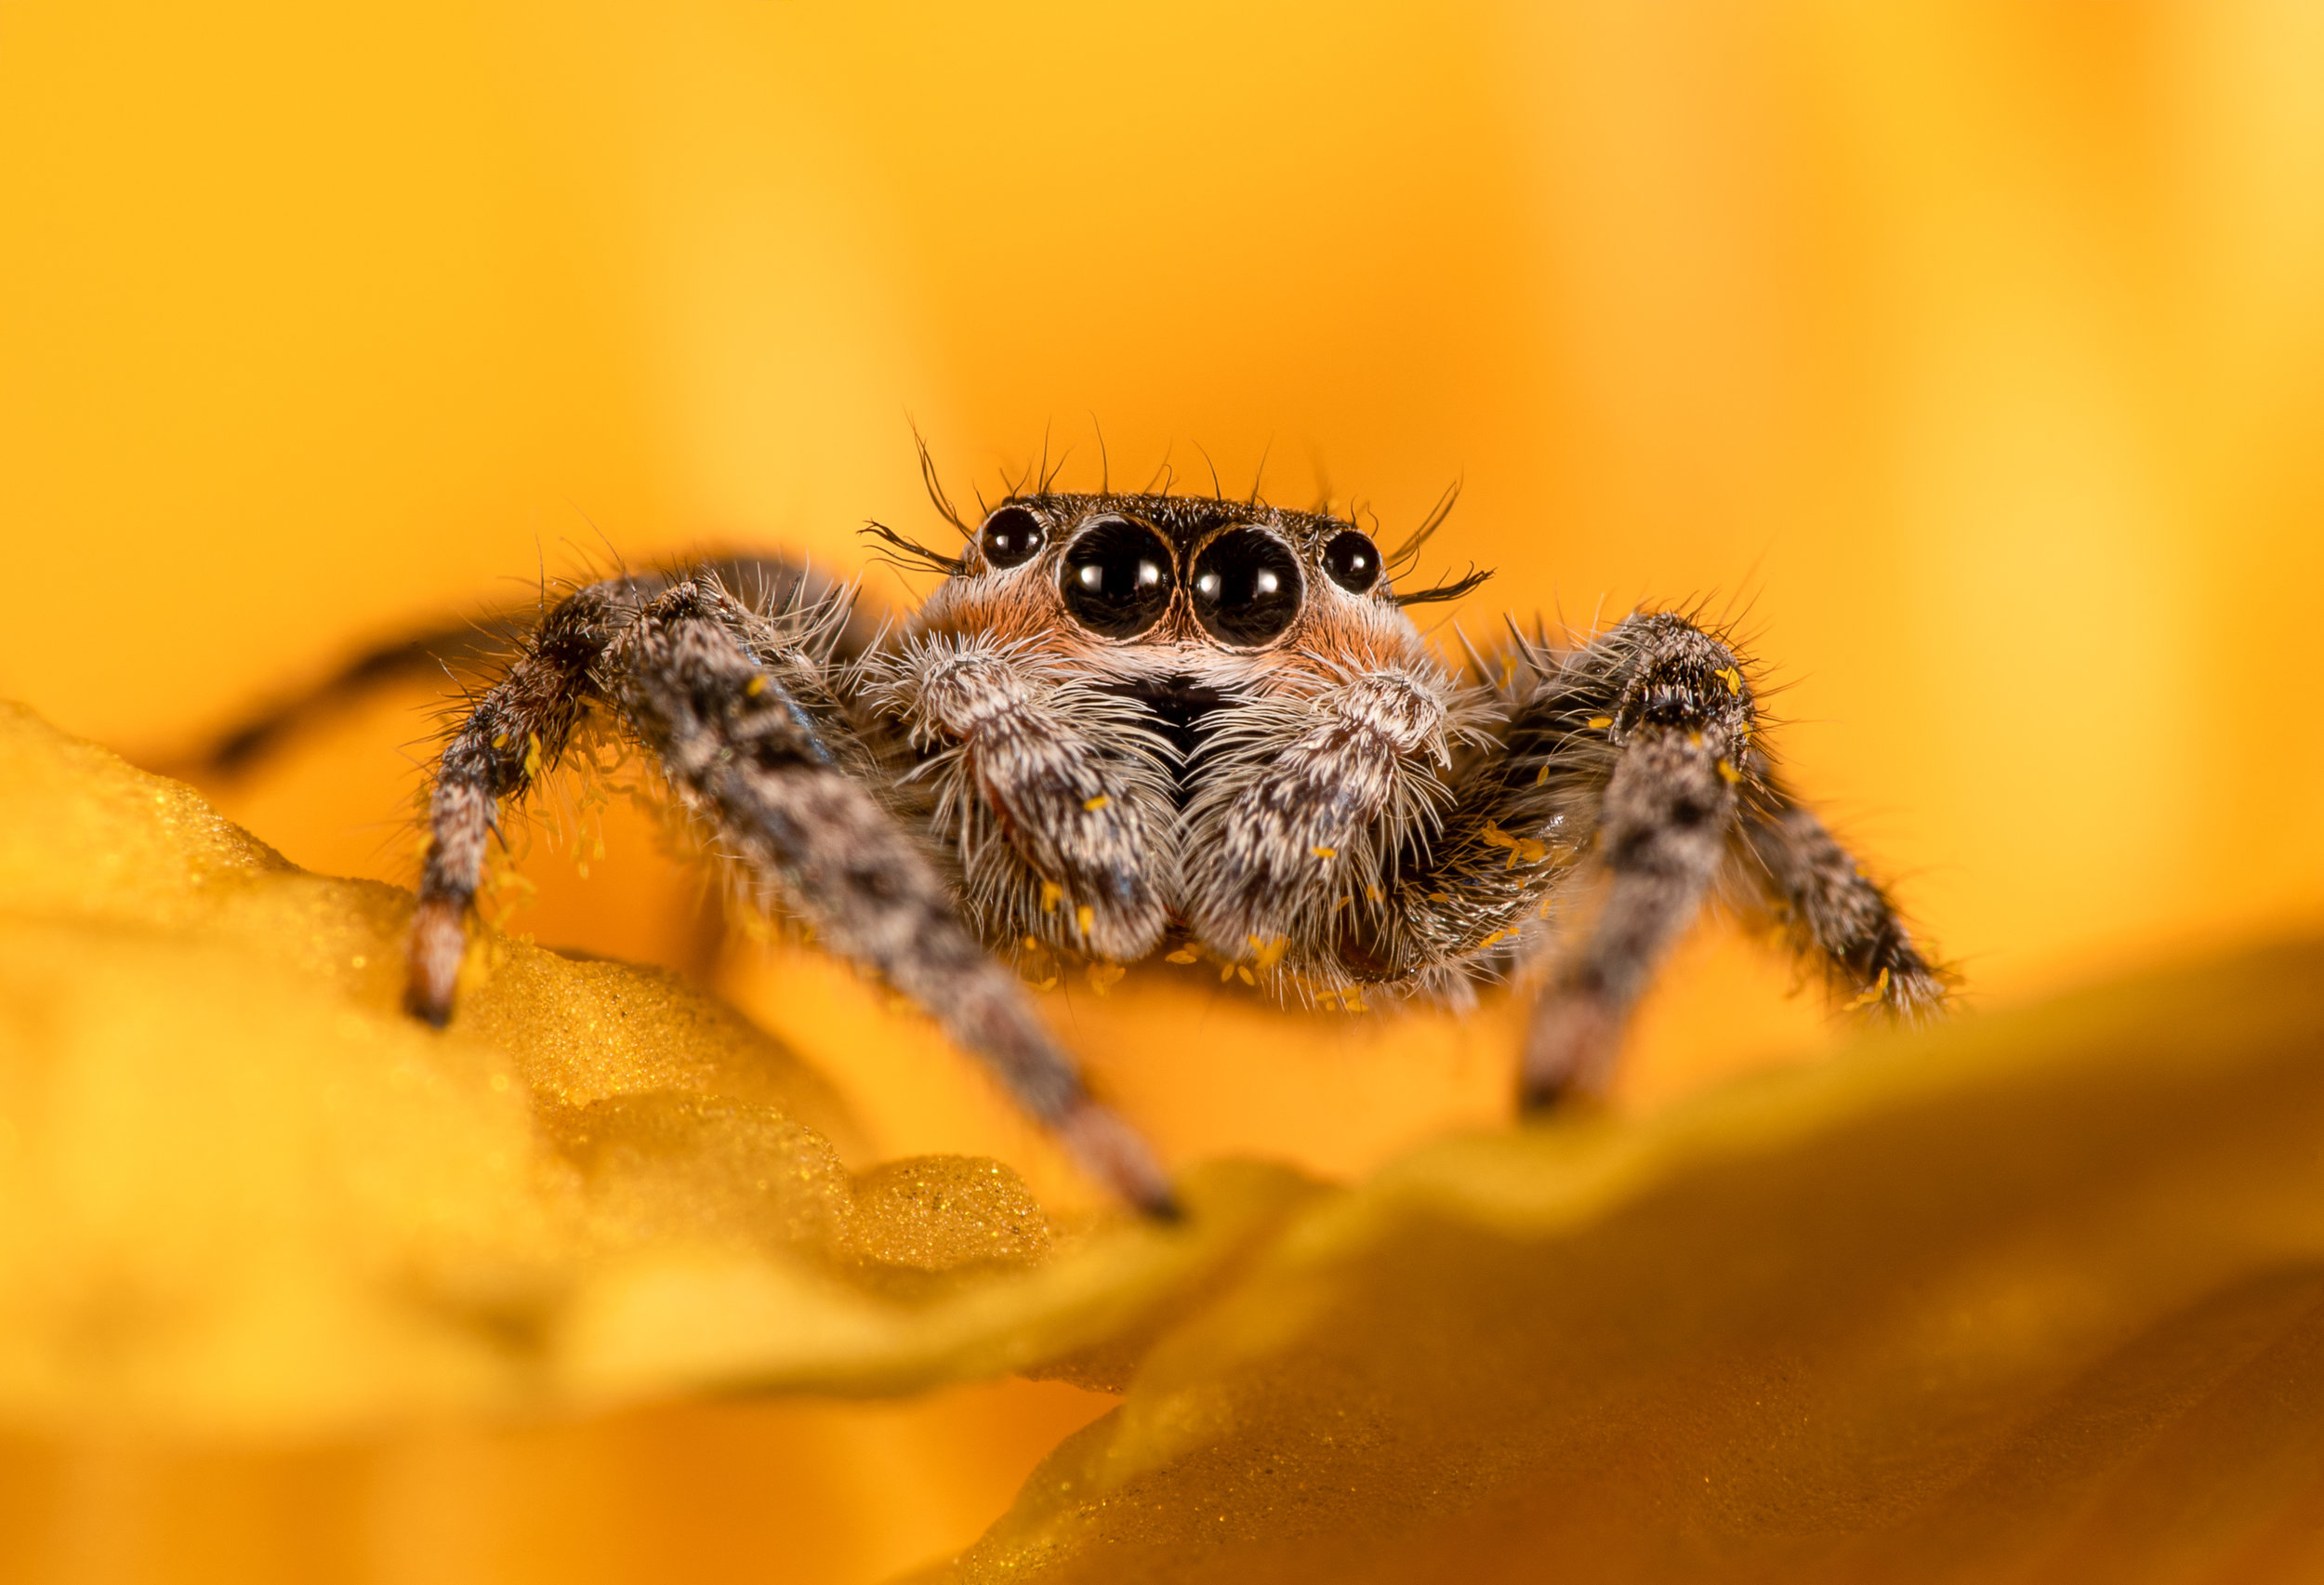 Tan Jumping Spider (2-image stack)